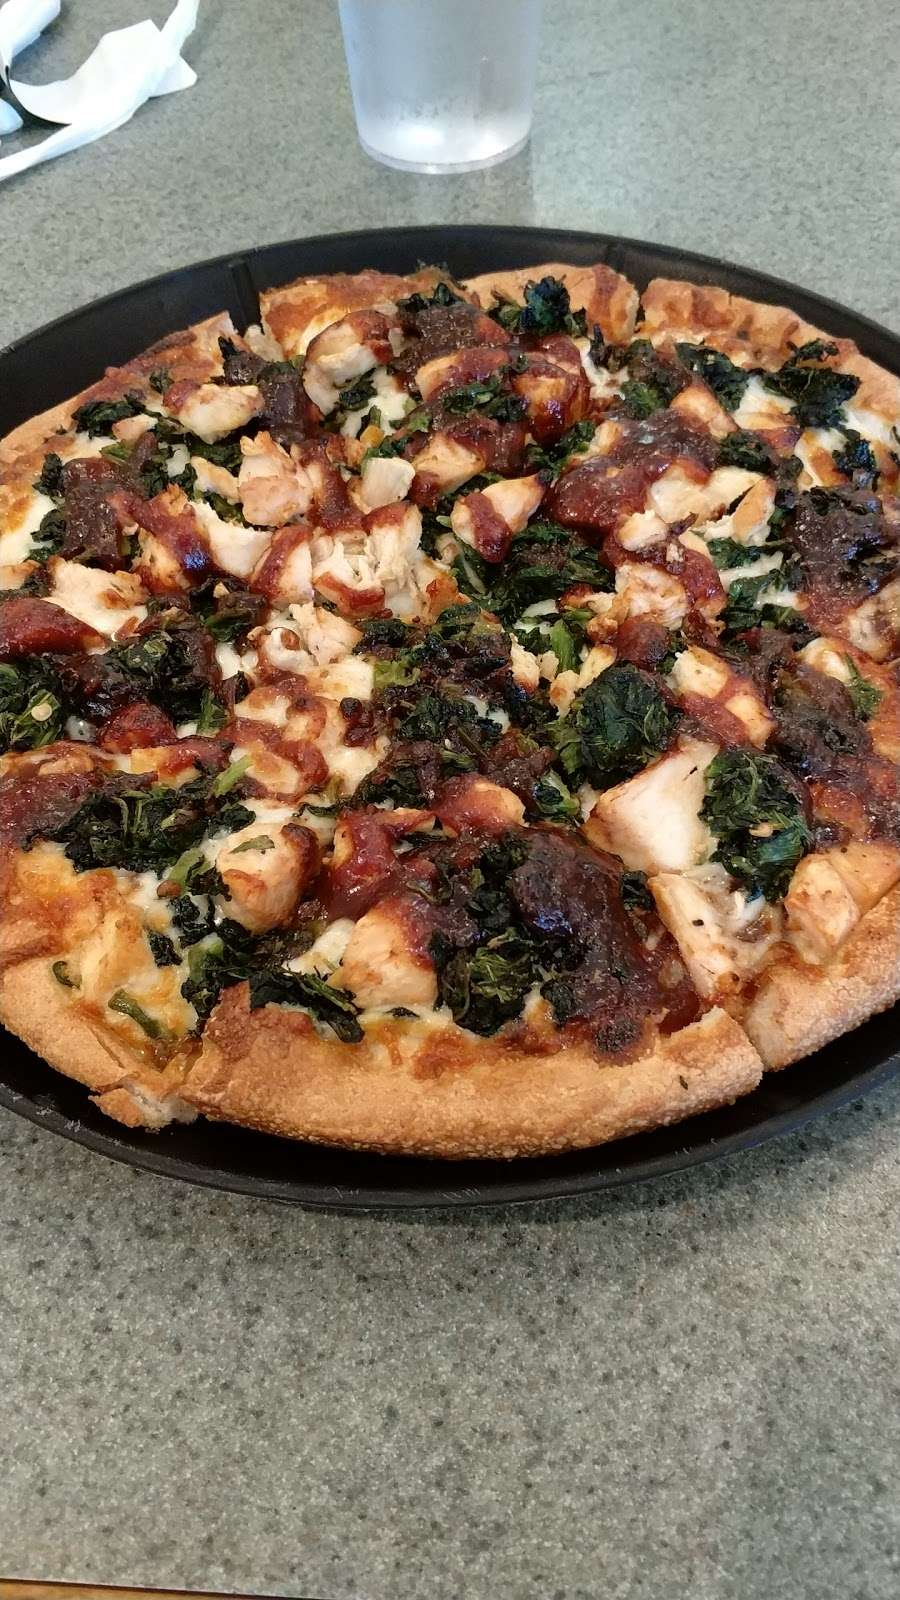 Elite Pizza & Restaurant II - meal delivery    Photo 5 of 7   Address: Rhode Island 102, 1452 Broncos Hwy, Harrisville, RI 02830, USA   Phone: (401) 567-7767